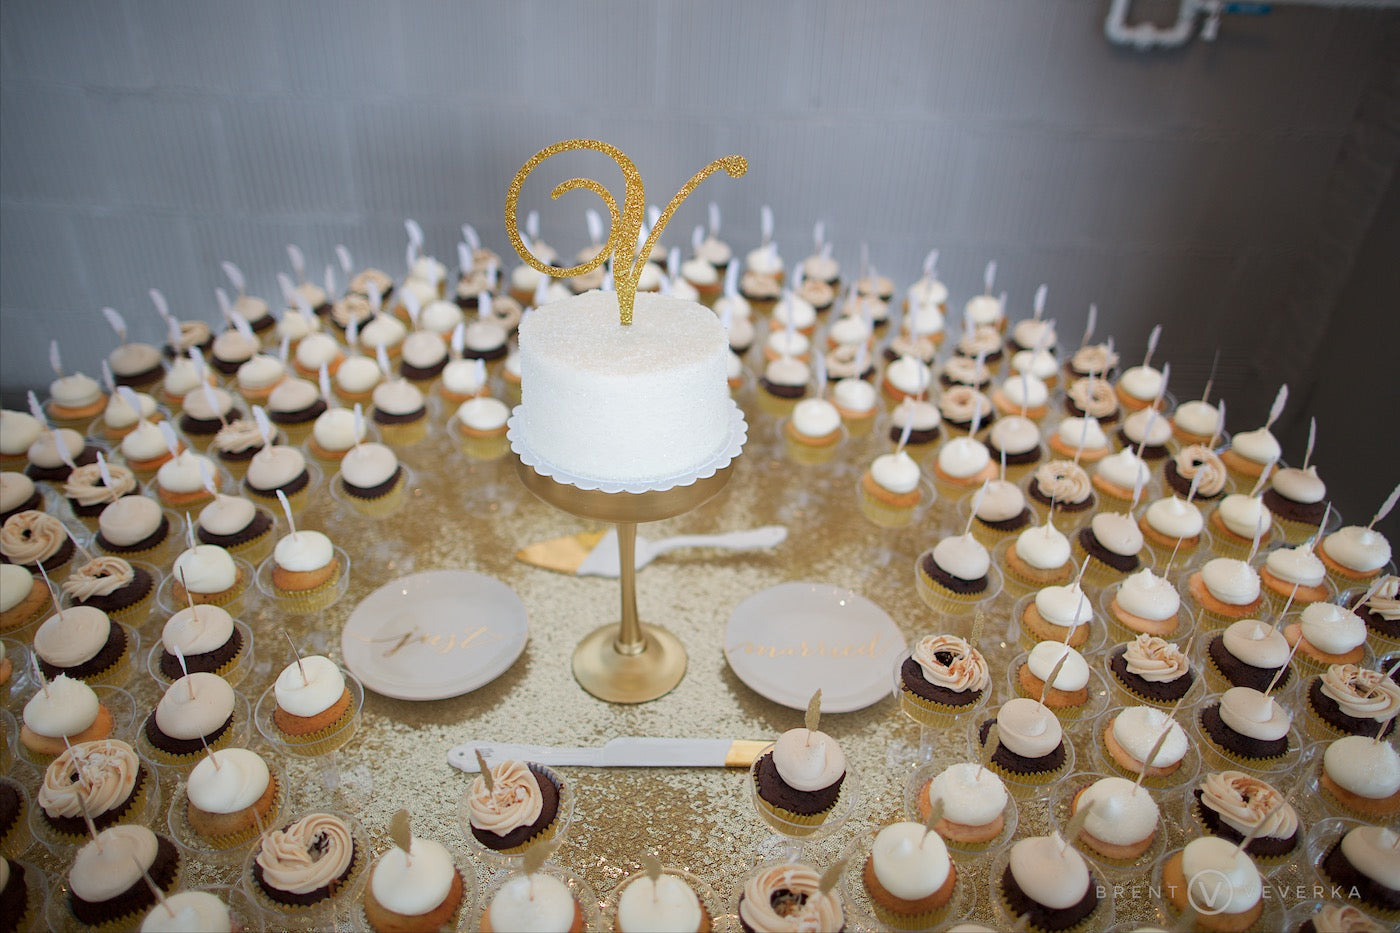 Cake and Cupcake Table | Glam Speakeasy Wedding | Brent Veverka Media